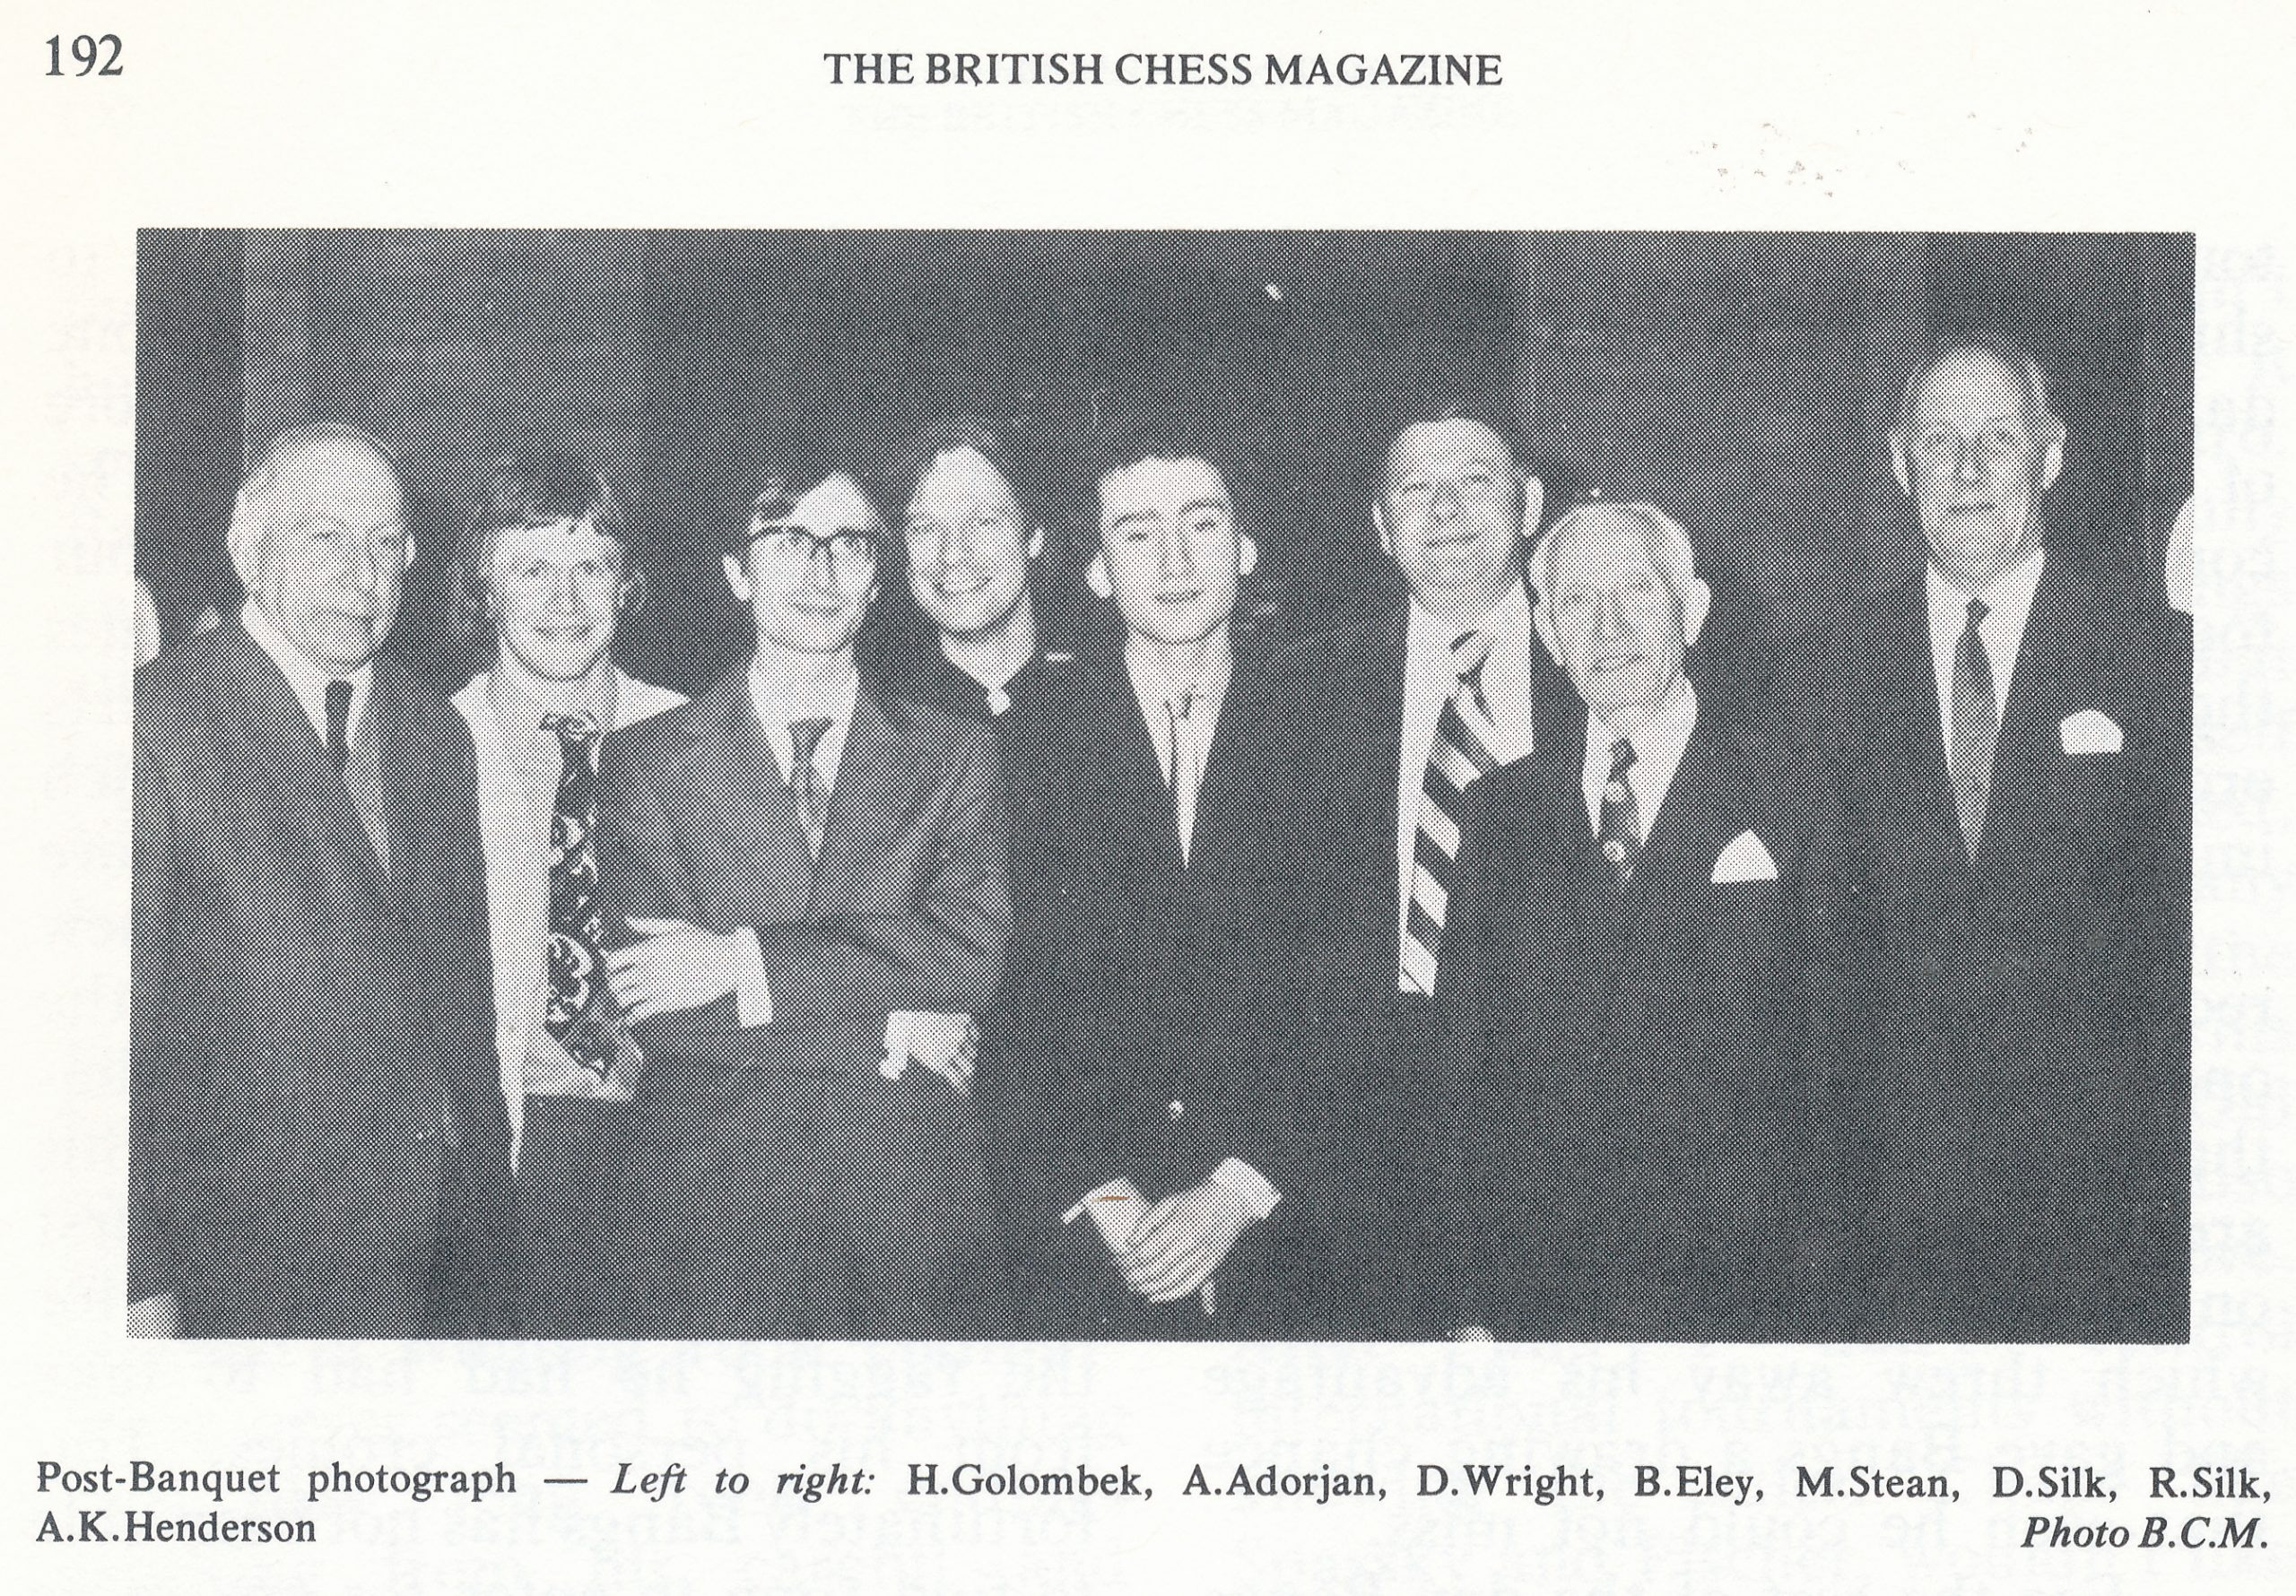 Post-banquet photograph - left to right : Harry Golombek, Andras Adorjan, Danny Wright, Brian Eley, Michael Stean, D. Silk, Robert Silk, AK Henderson. The Robert Silk Fellowship Tournament, Canterbury, 1973. Source : British Chess Magazine, Volume 93, Number 5, page 192